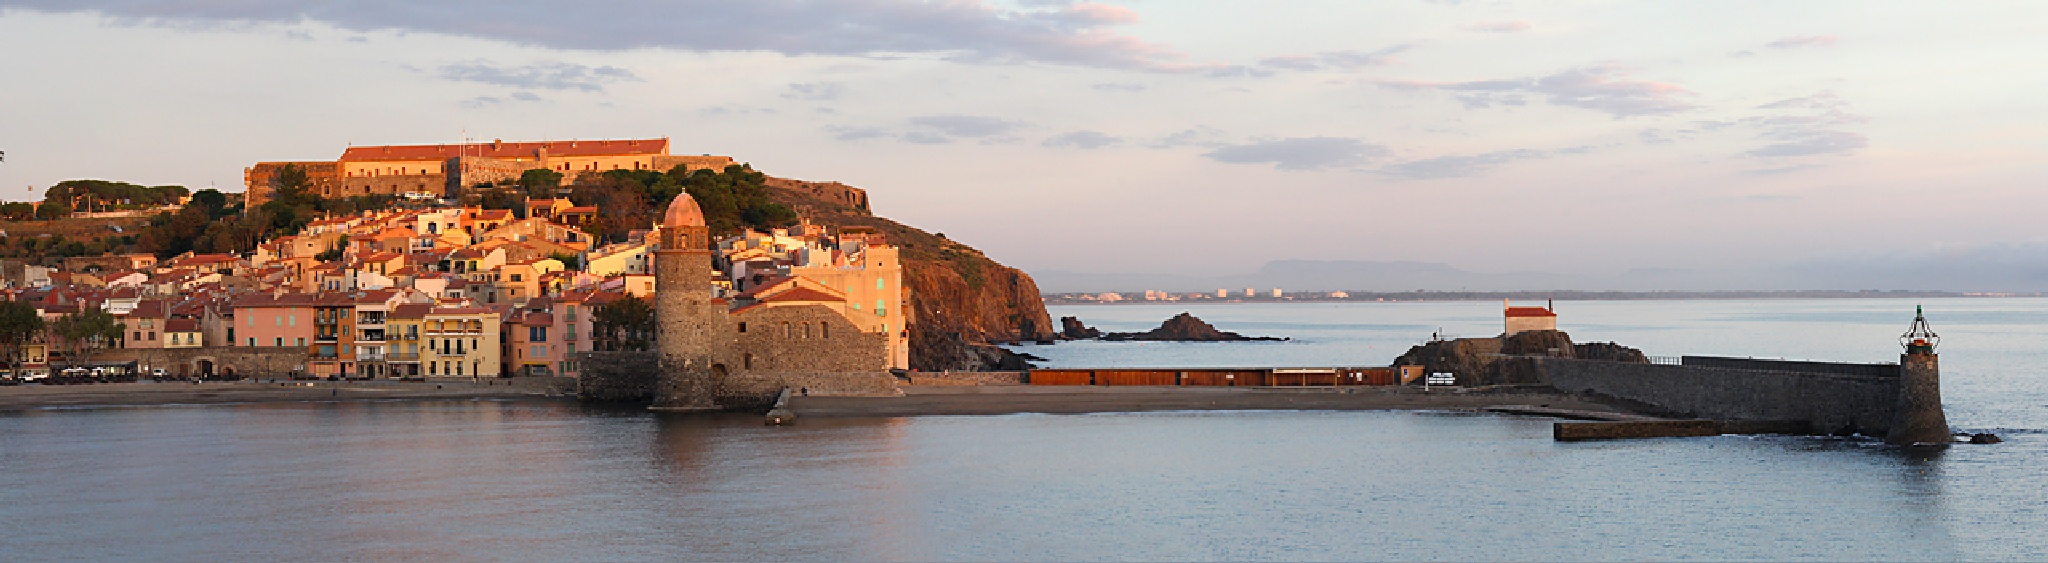 Collioure - Morning Panorama by Carl Main